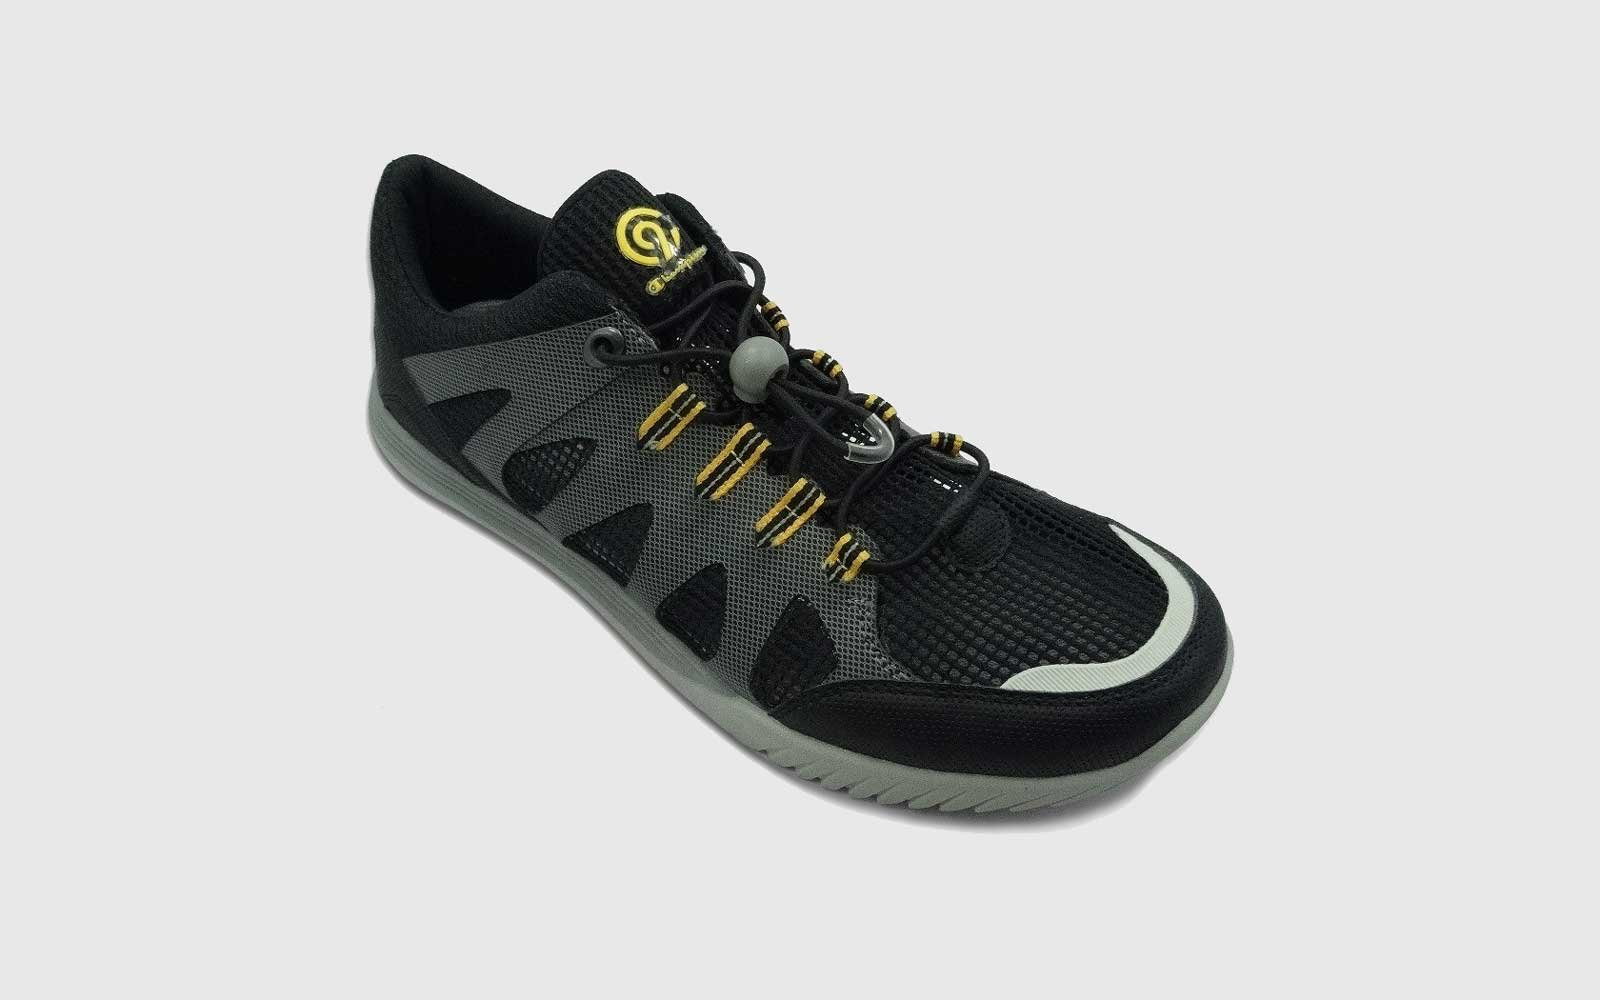 8e01055e1d2 The Best Men s Water Shoes for 2019